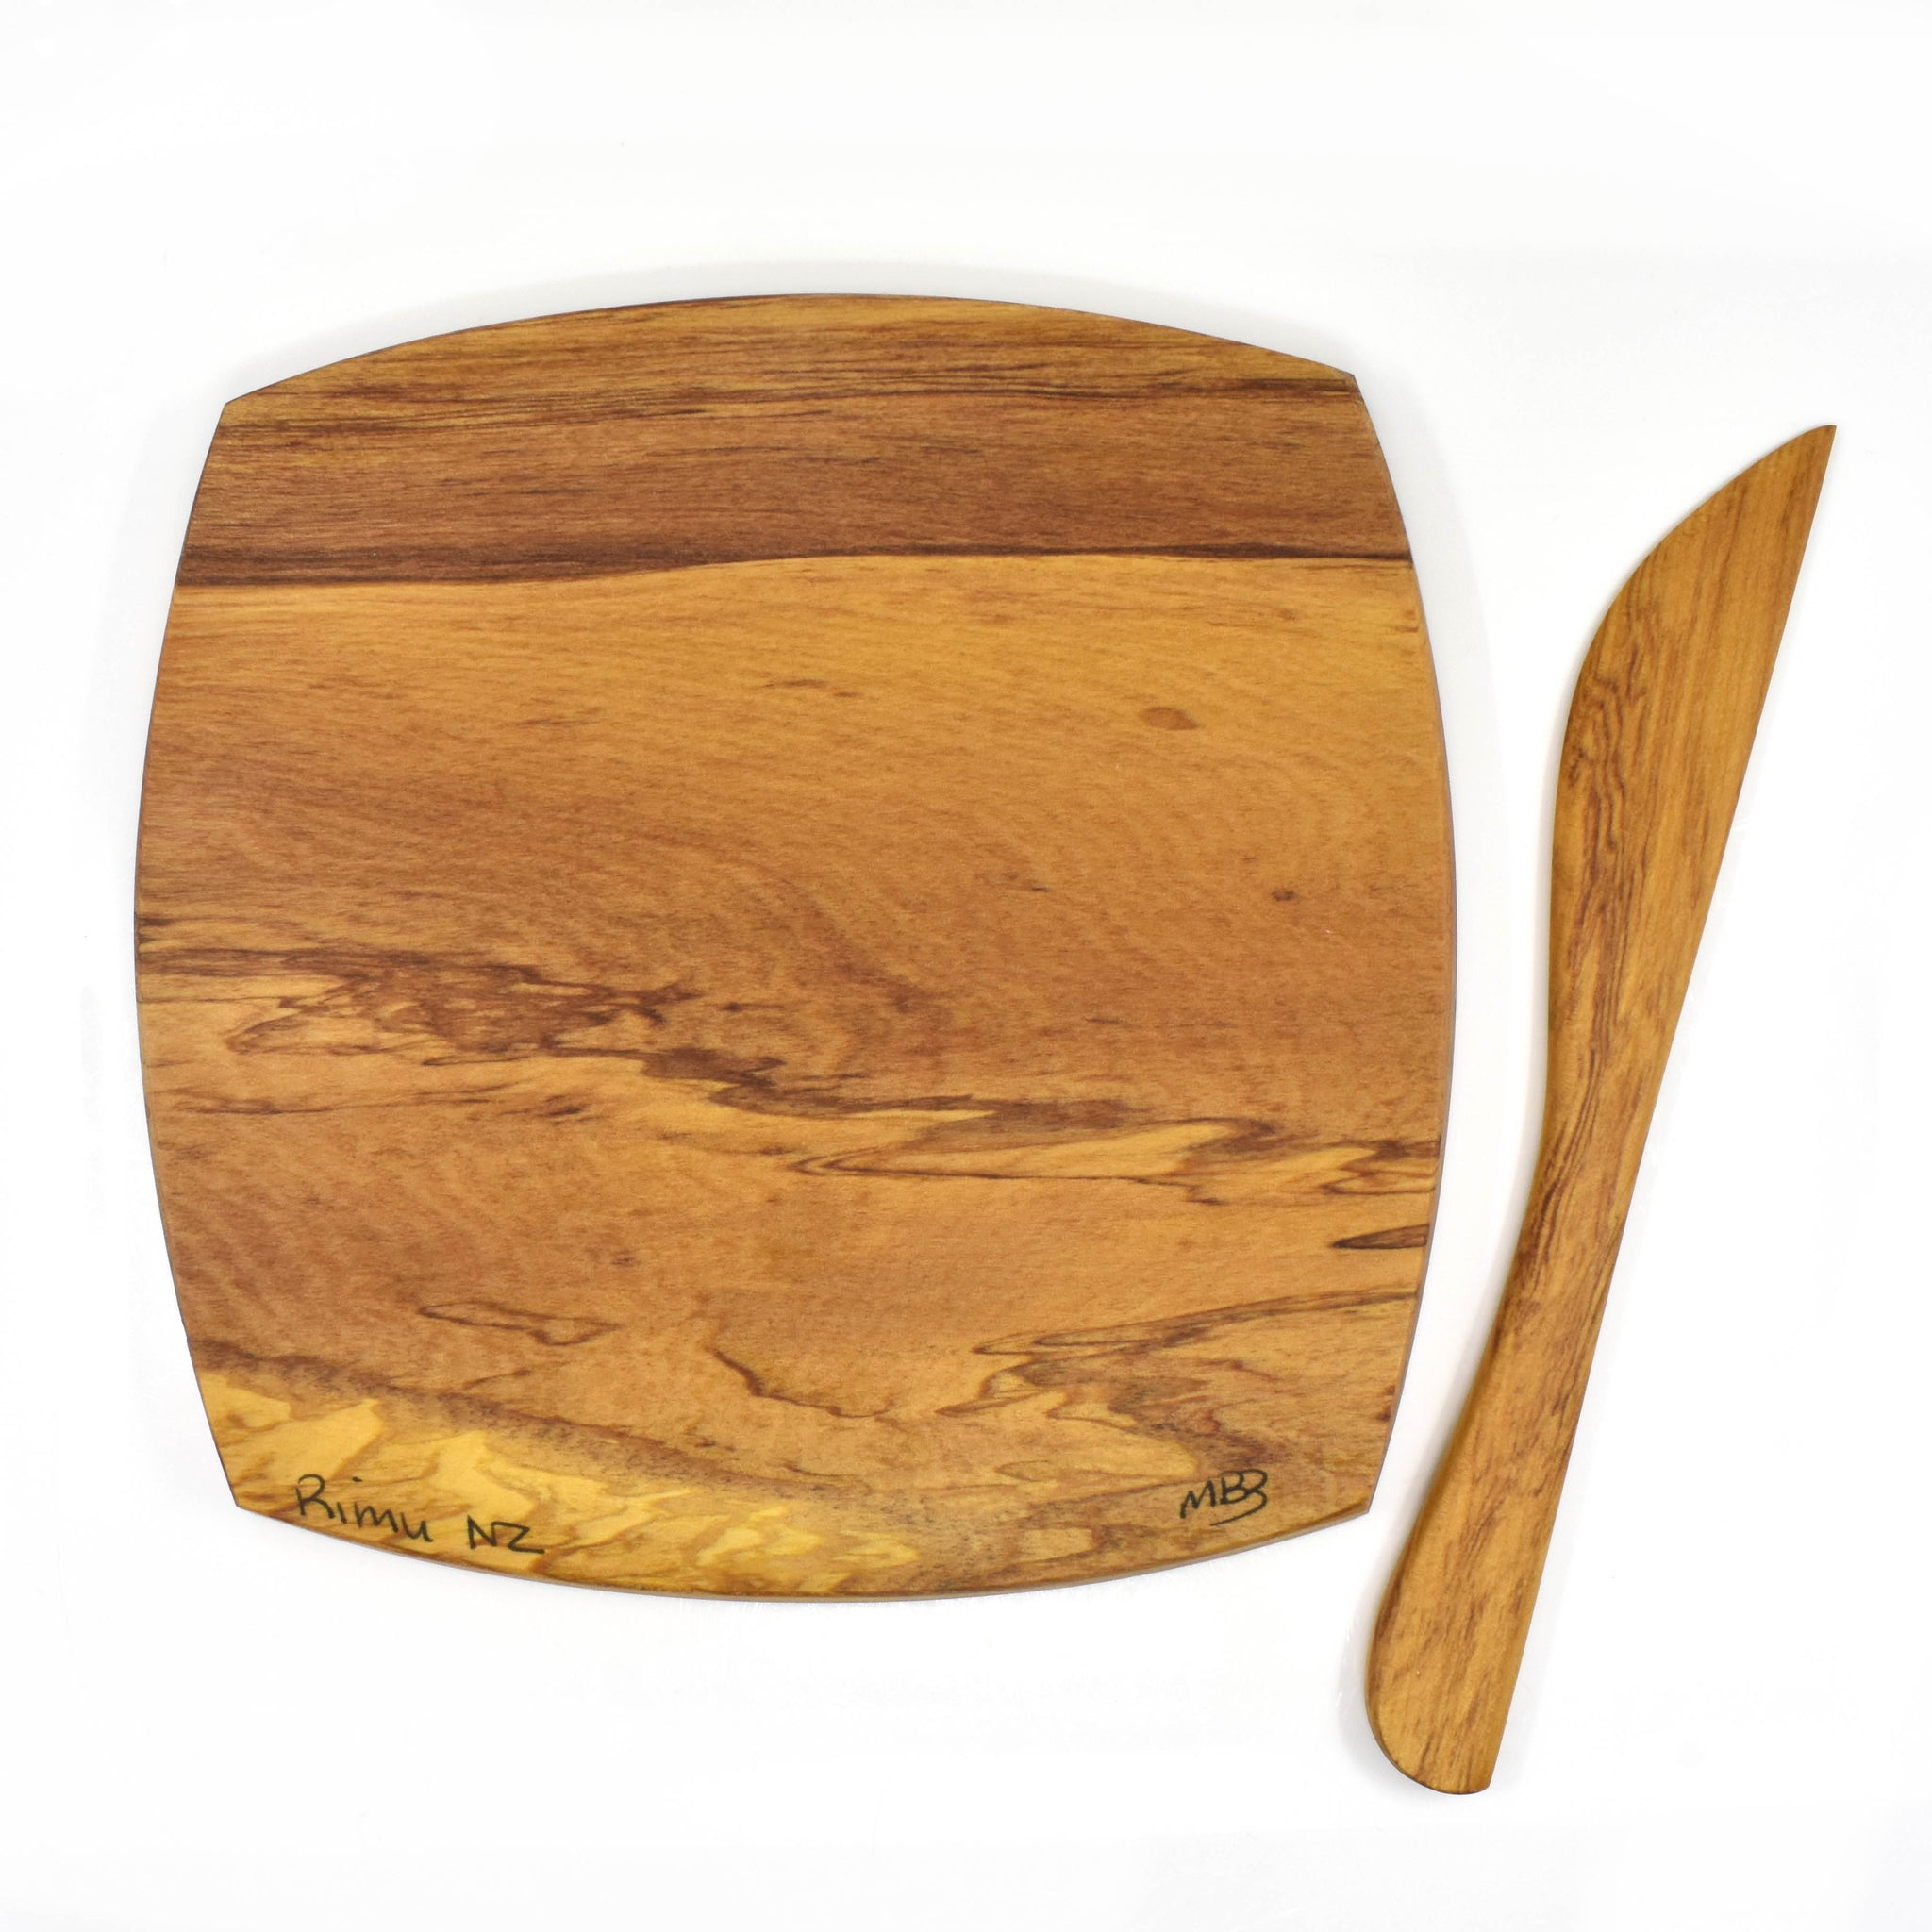 Rimu cheeseboard and knife - small